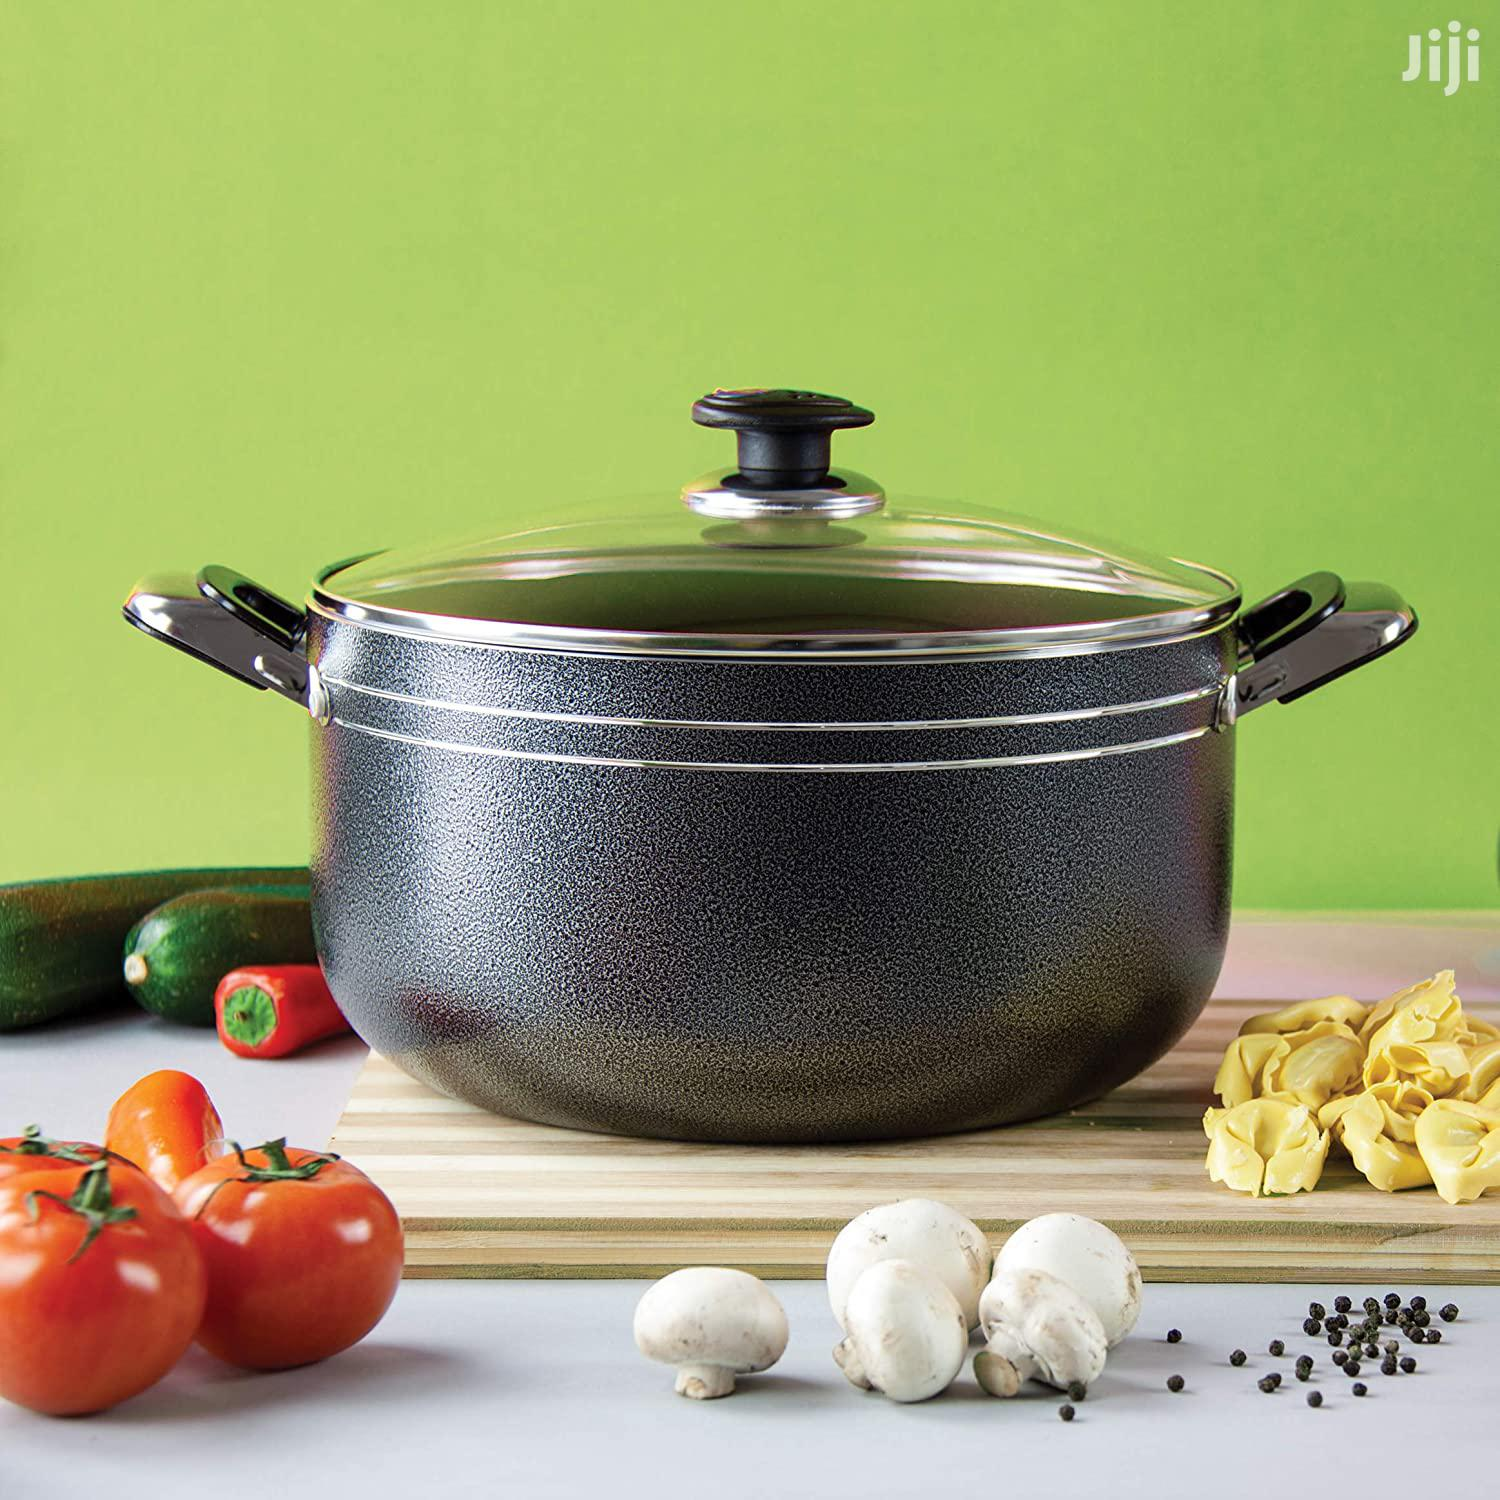 Nonstick Cookware Dish 5pcs | Kitchen & Dining for sale in Kampala, Central Region, Uganda